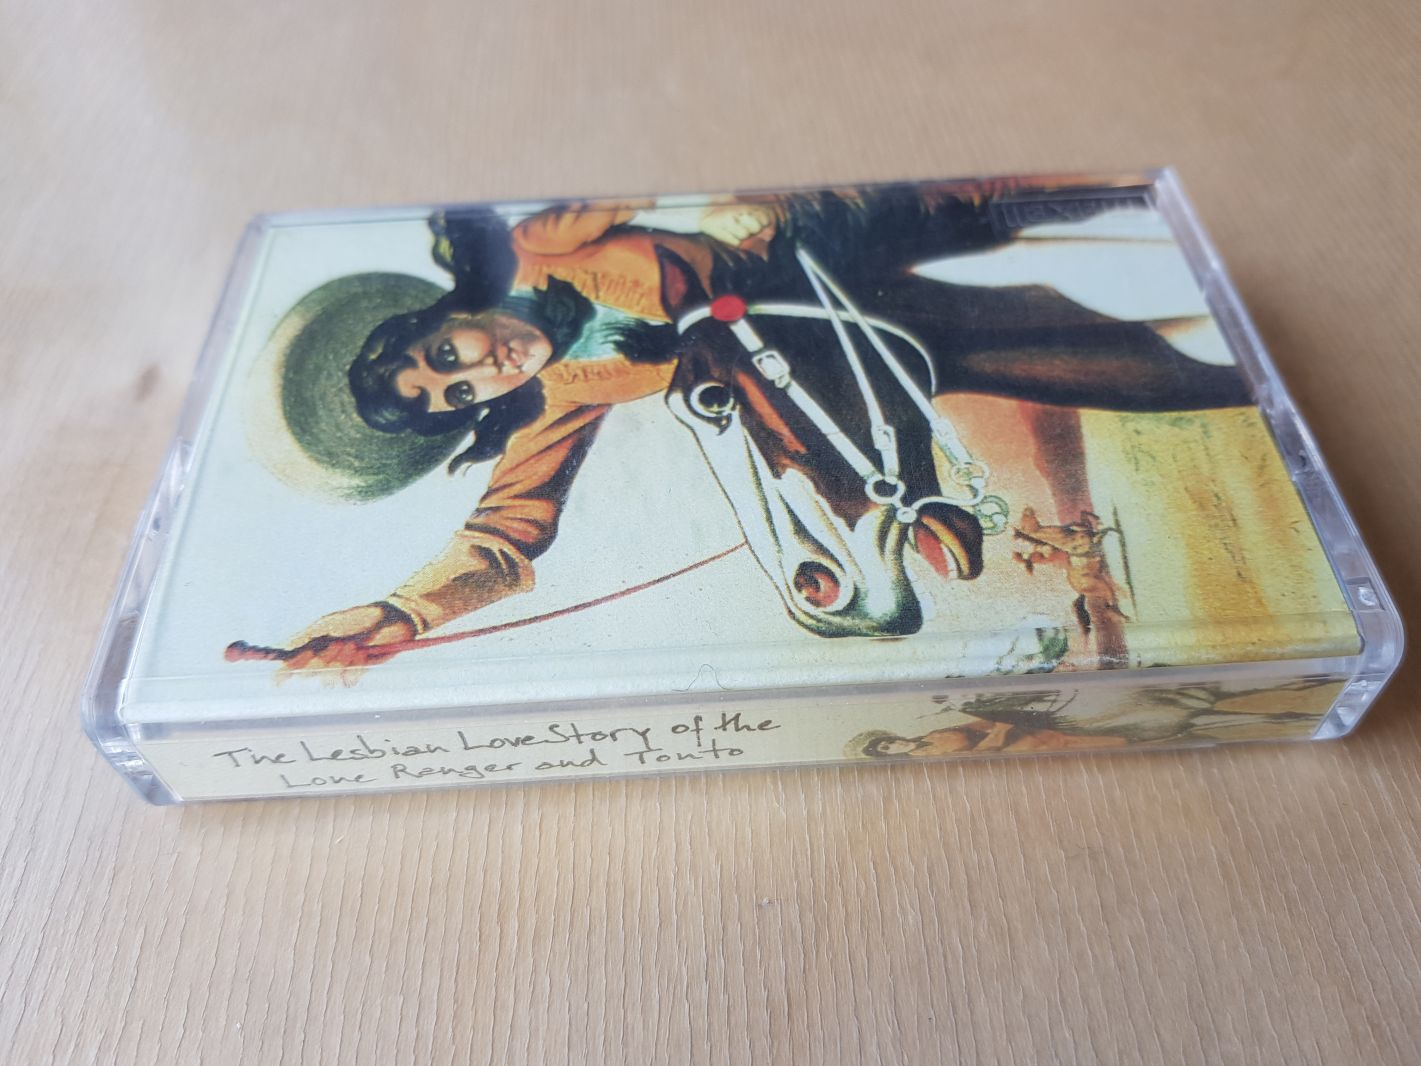 "Shawna Dempsey & Lorri Millan, ""The Lesbian Love Story of the Lone Ranger & Tonto"" cassette"